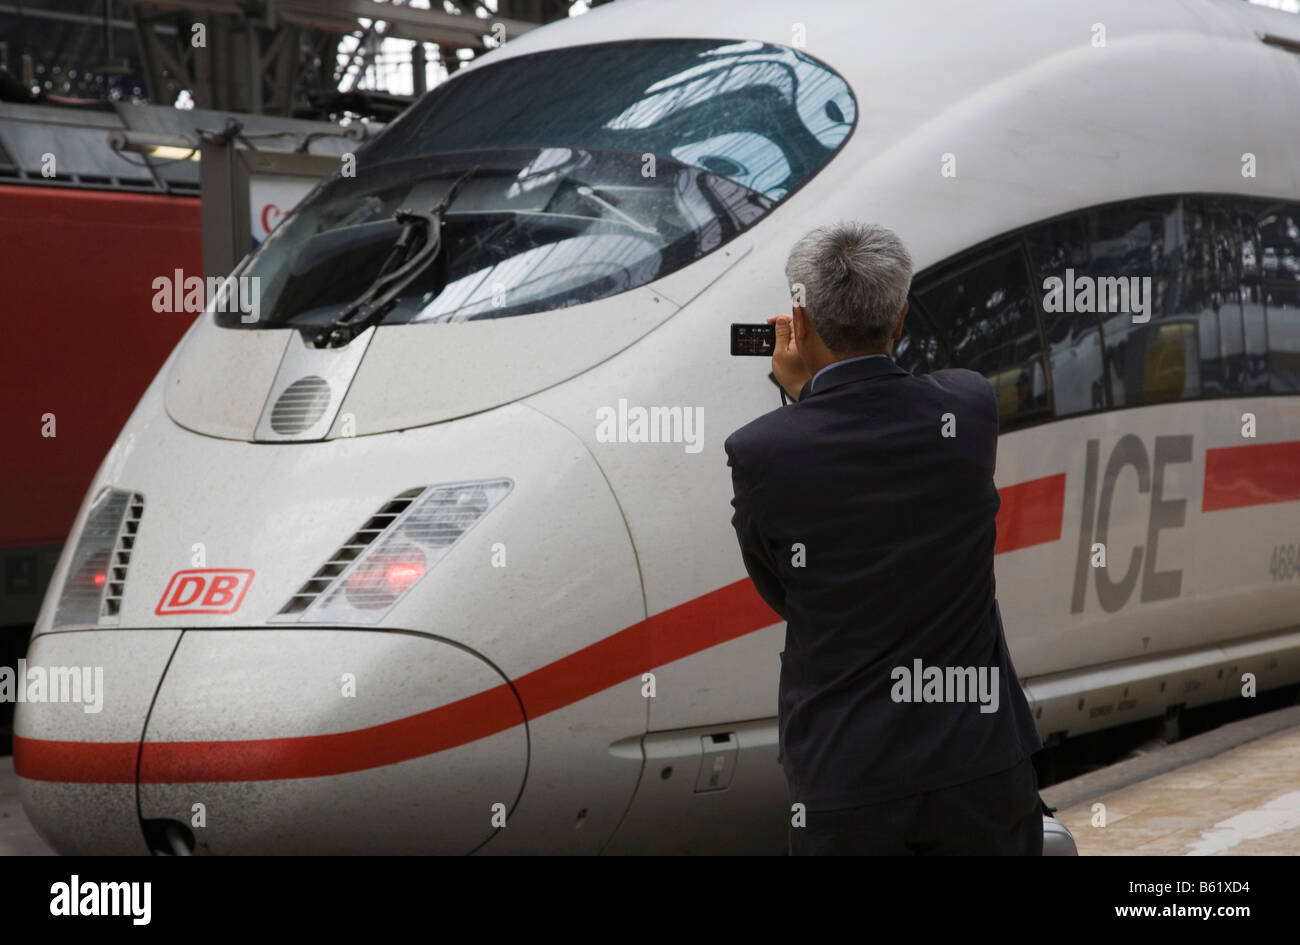 Asian tourist taking a photo of the front of an ICE in Frankfurt main station, Frankfurt am Main, Hesse, Germany, Stock Photo